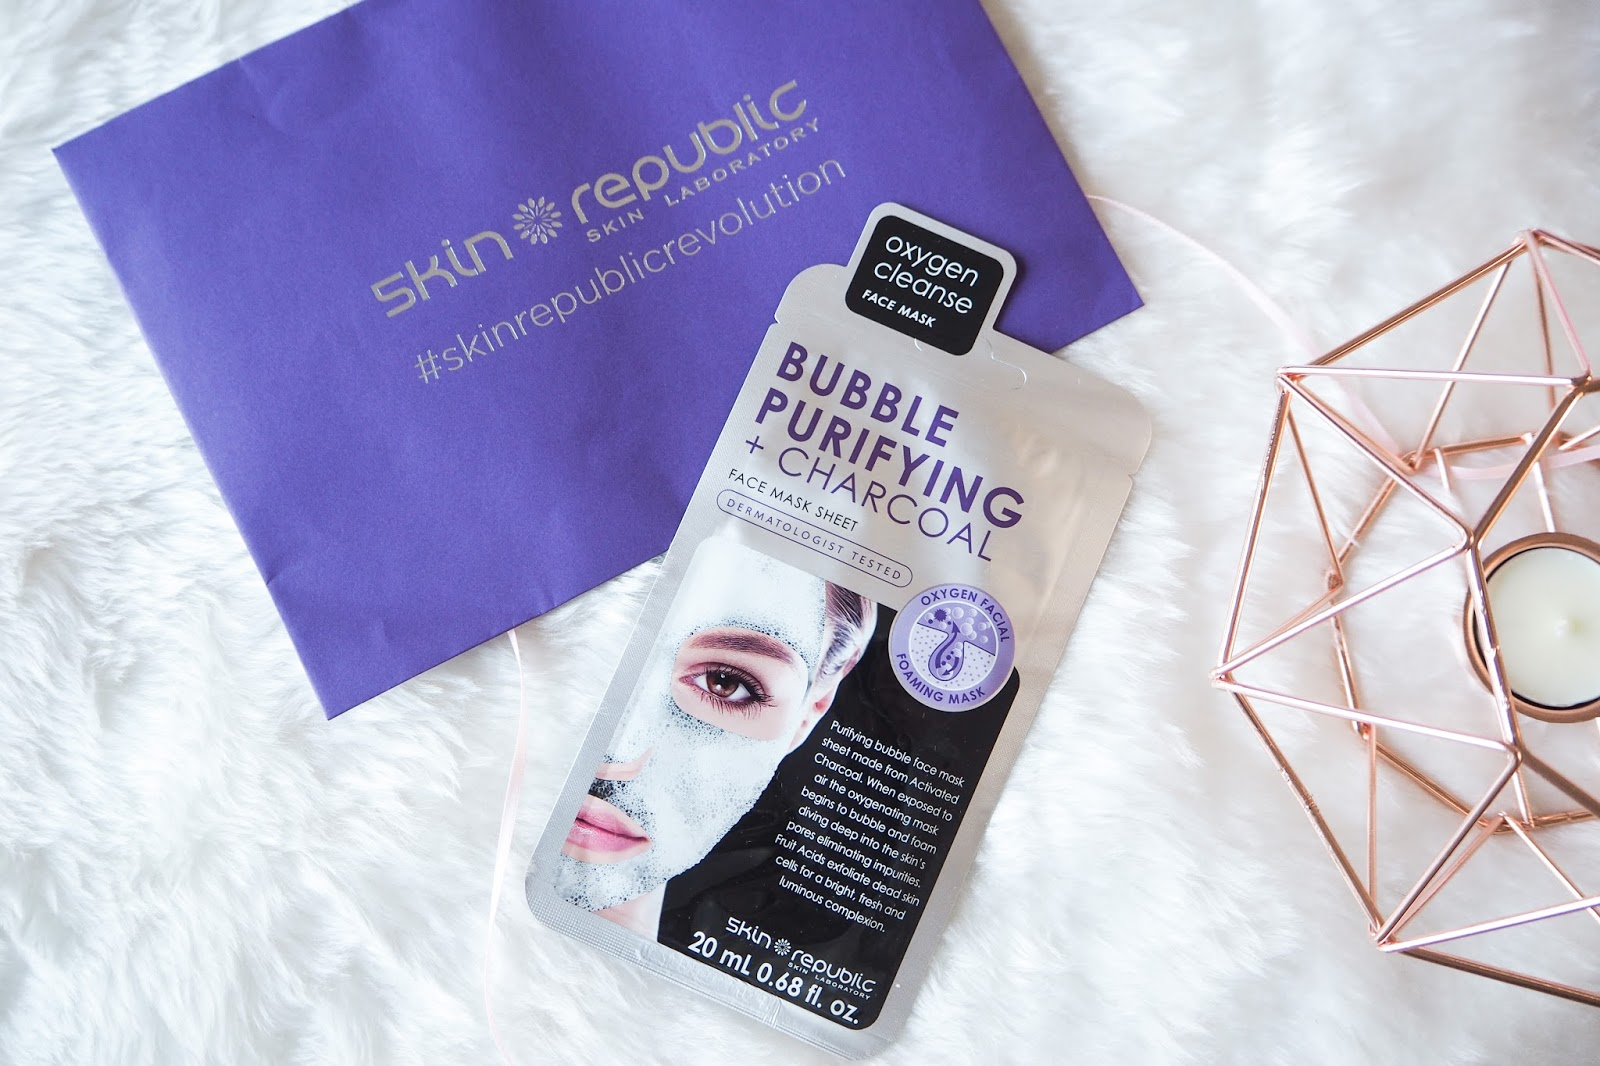 Skin Republic Bubble Purifyng and Charcoal Sheet Face Mask Review